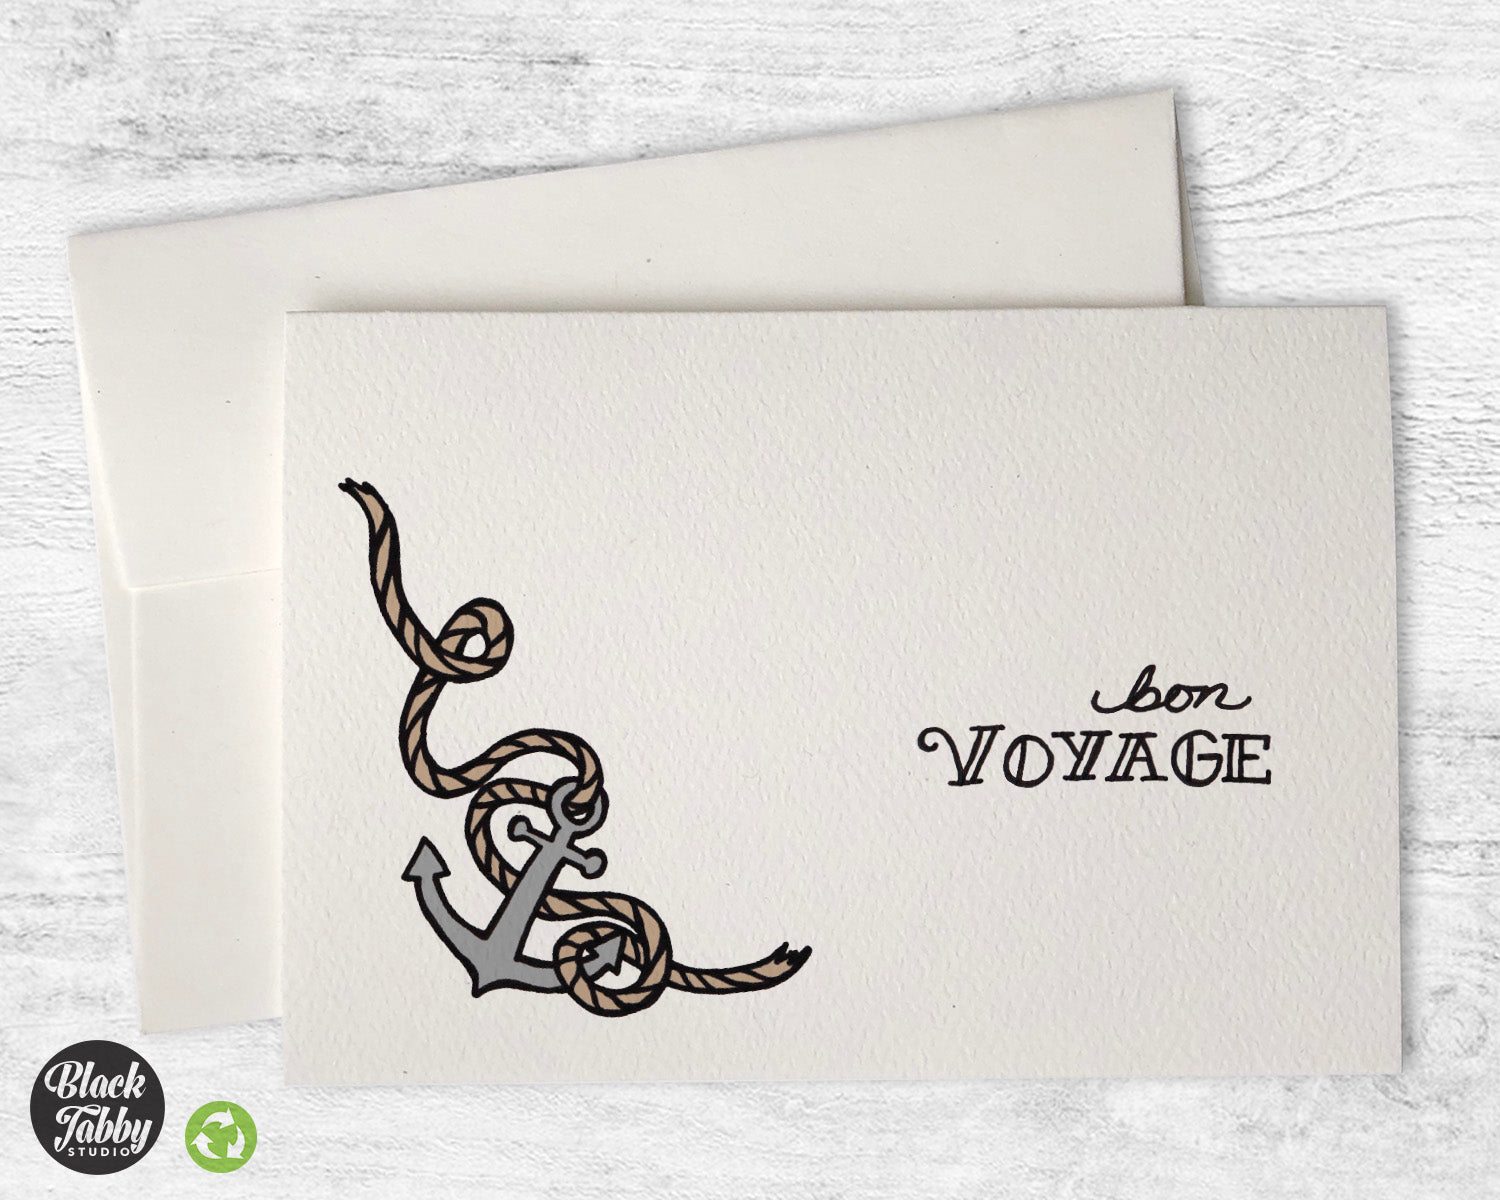 Anchors aweigh bon voyage greeting cards black tabby studio m4hsunfo